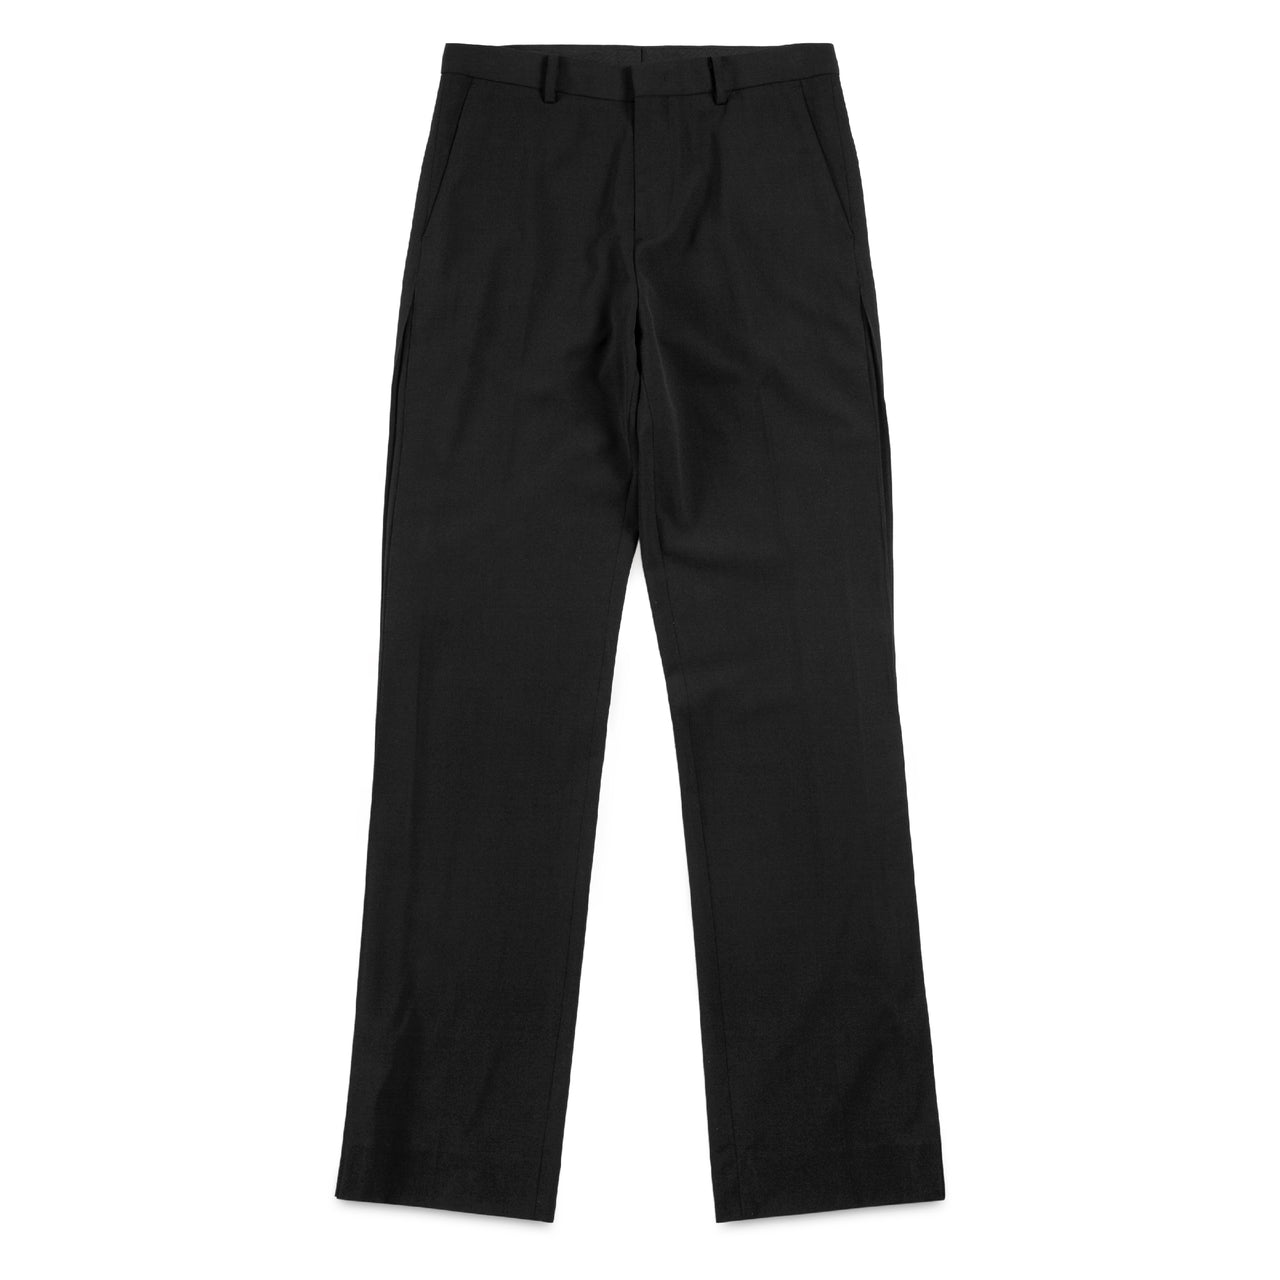 Navy Studio Black Pants with Double Pleated Details on Sides